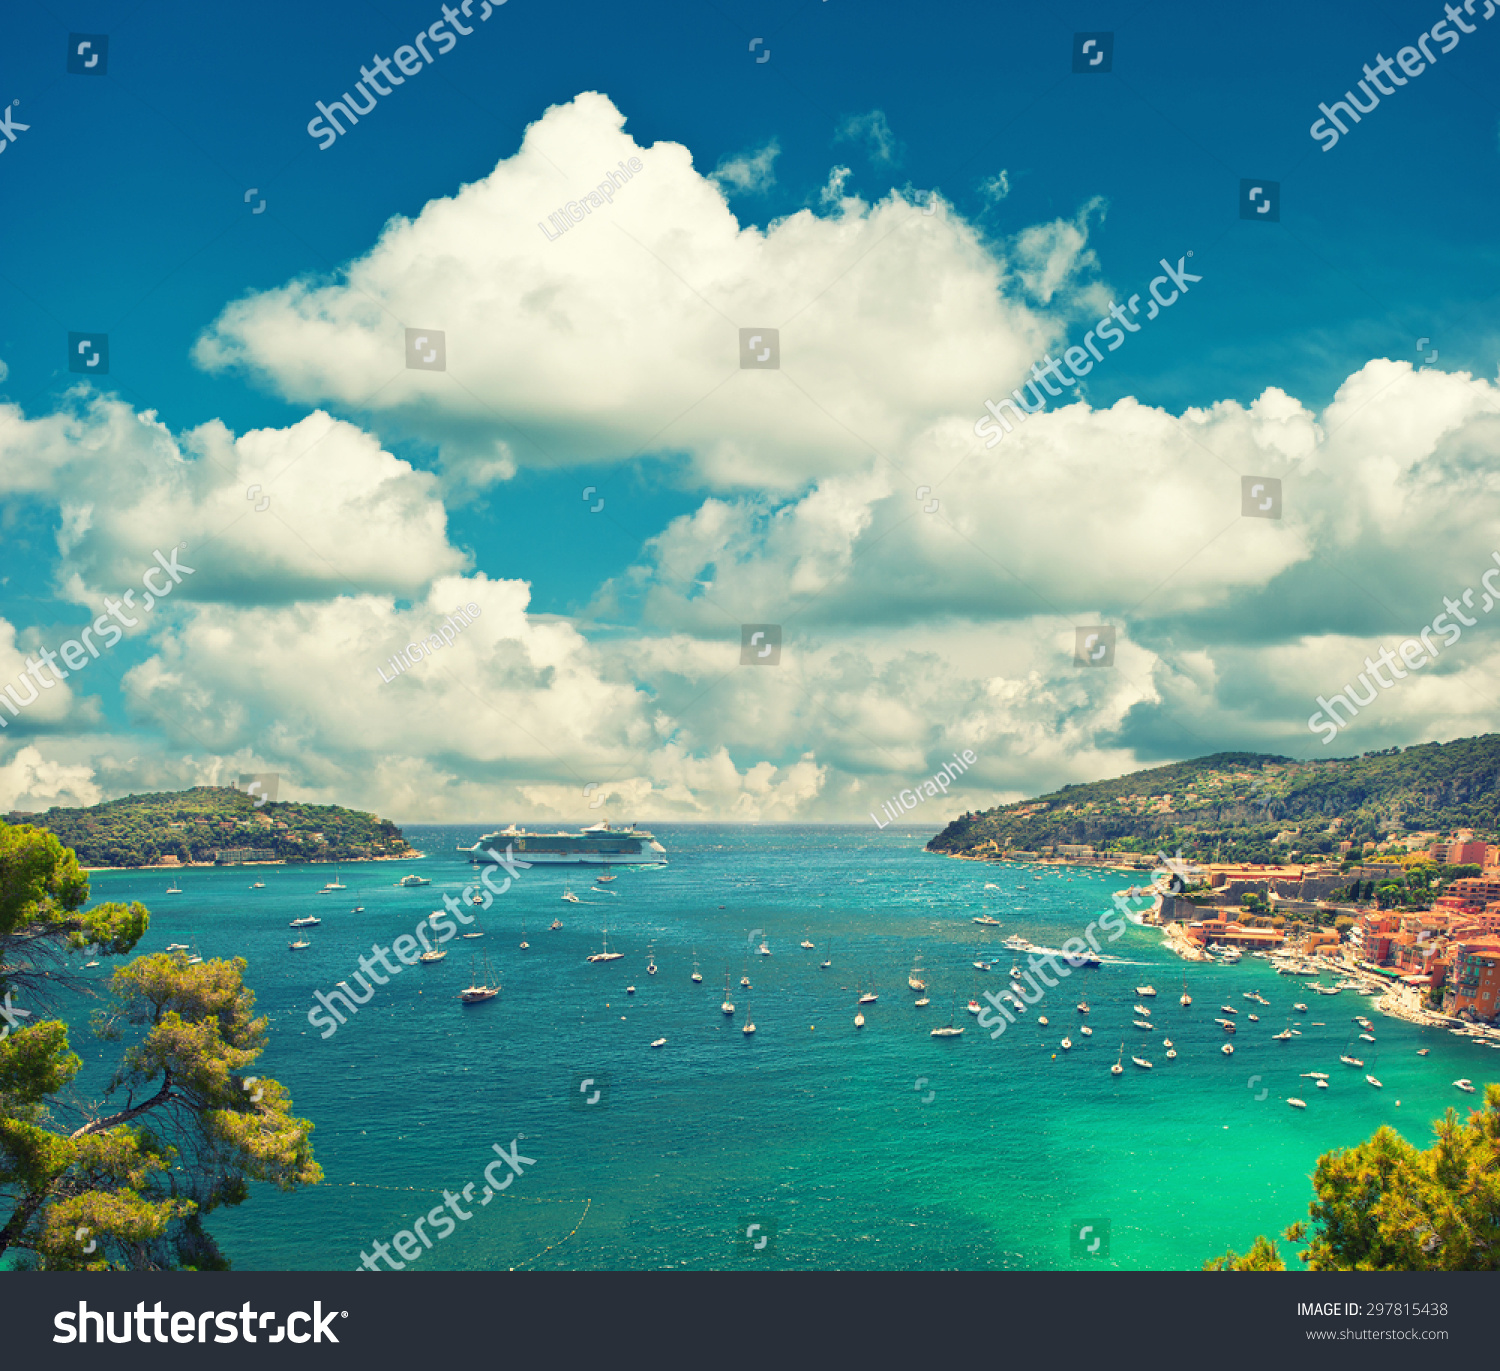 Mediterranean Style Houses With Ocean Views: Villefranche, Provence, French Riviera, Mediterranean Sea